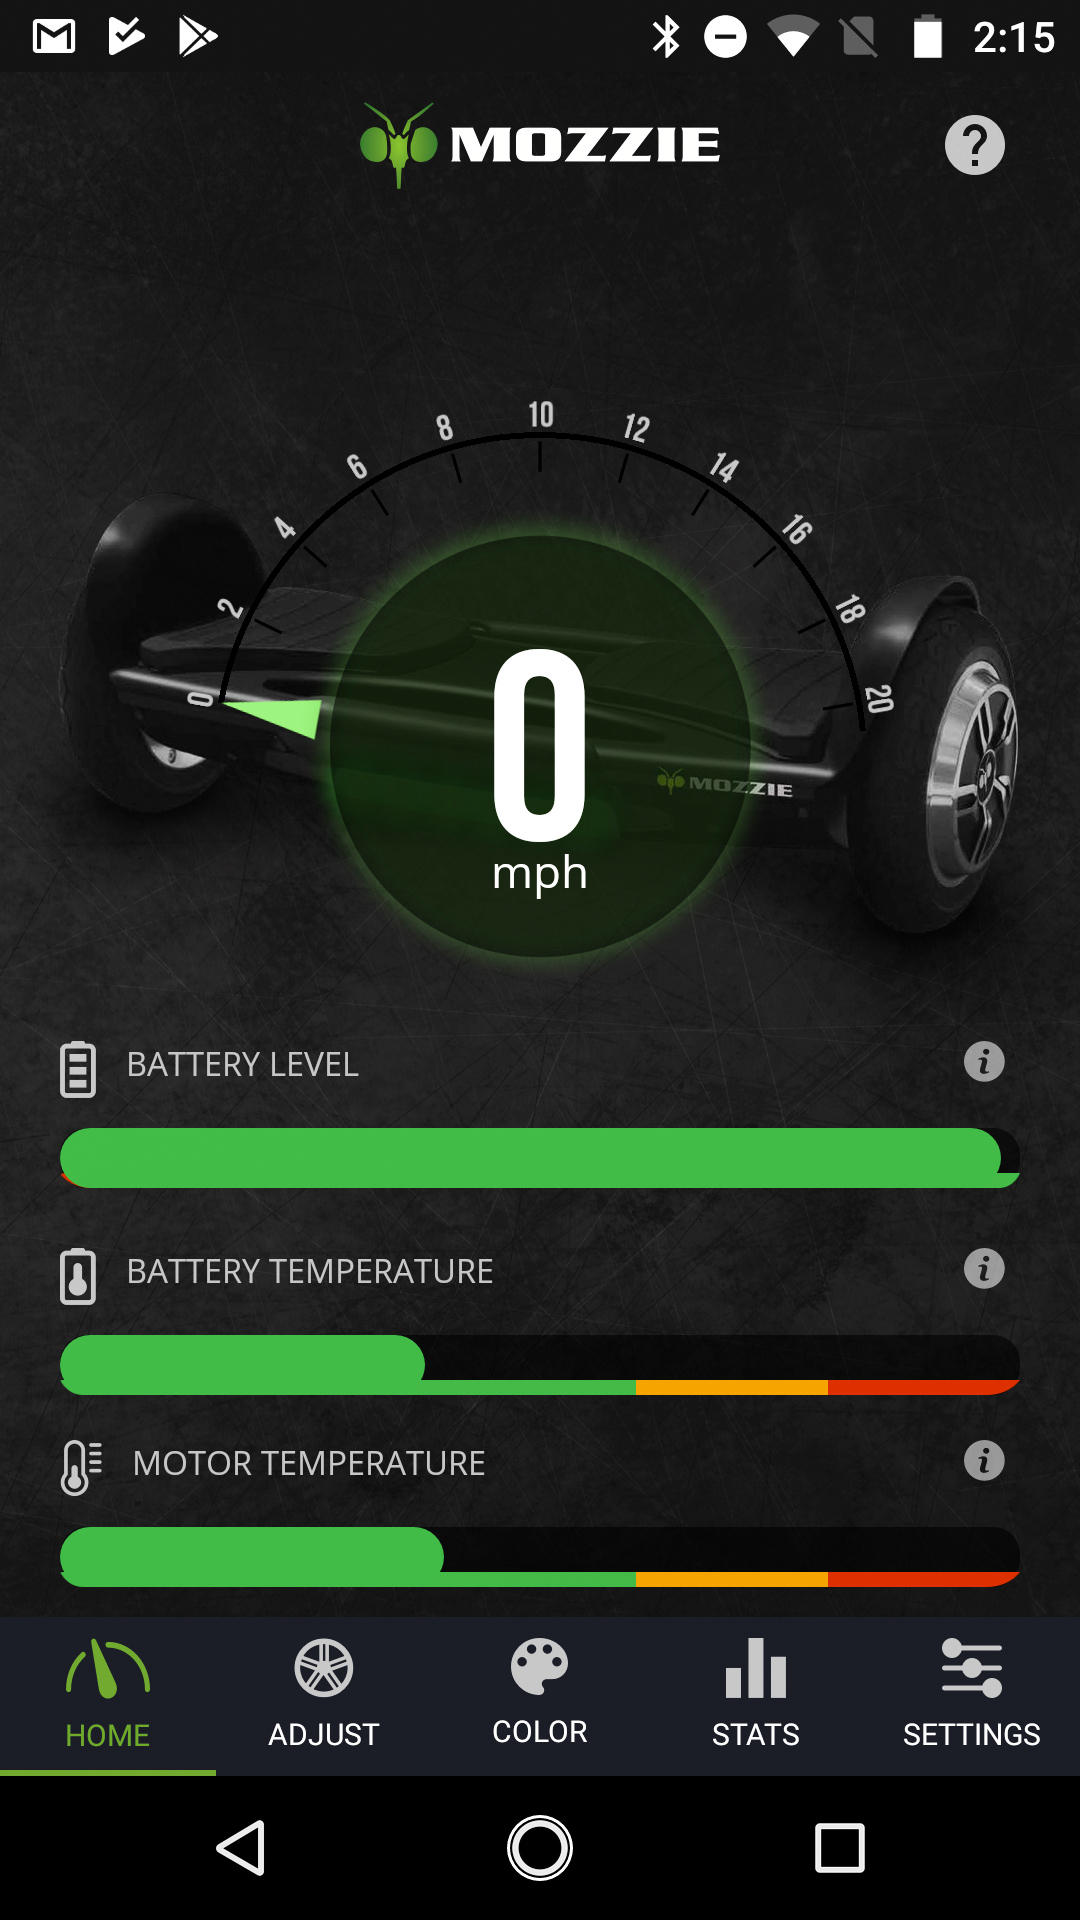 Mozzie hoverboard app